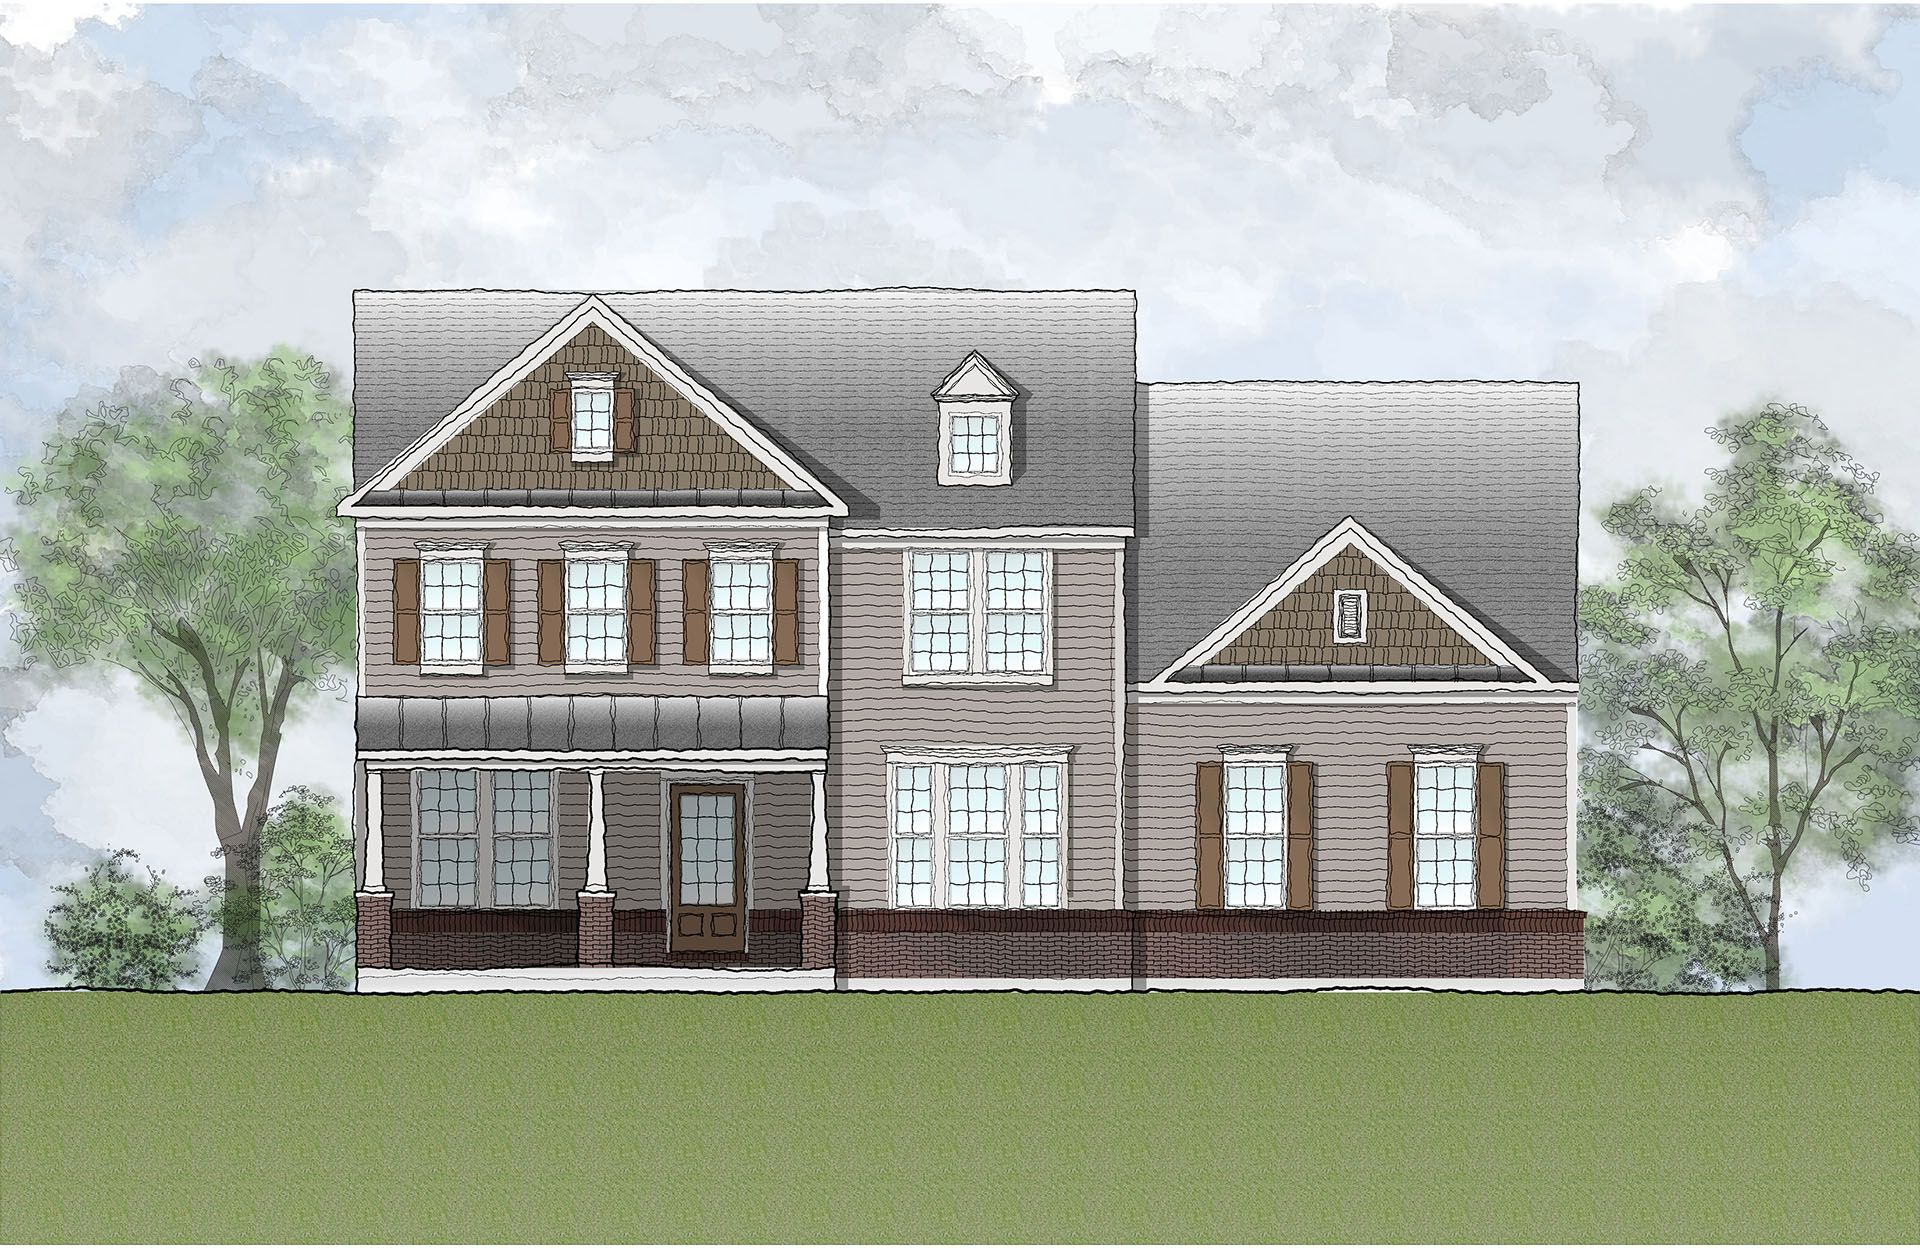 Single Family for Active at Sudley Farm - Monticello Doubleday Road Centreville, Virginia 20120 United States